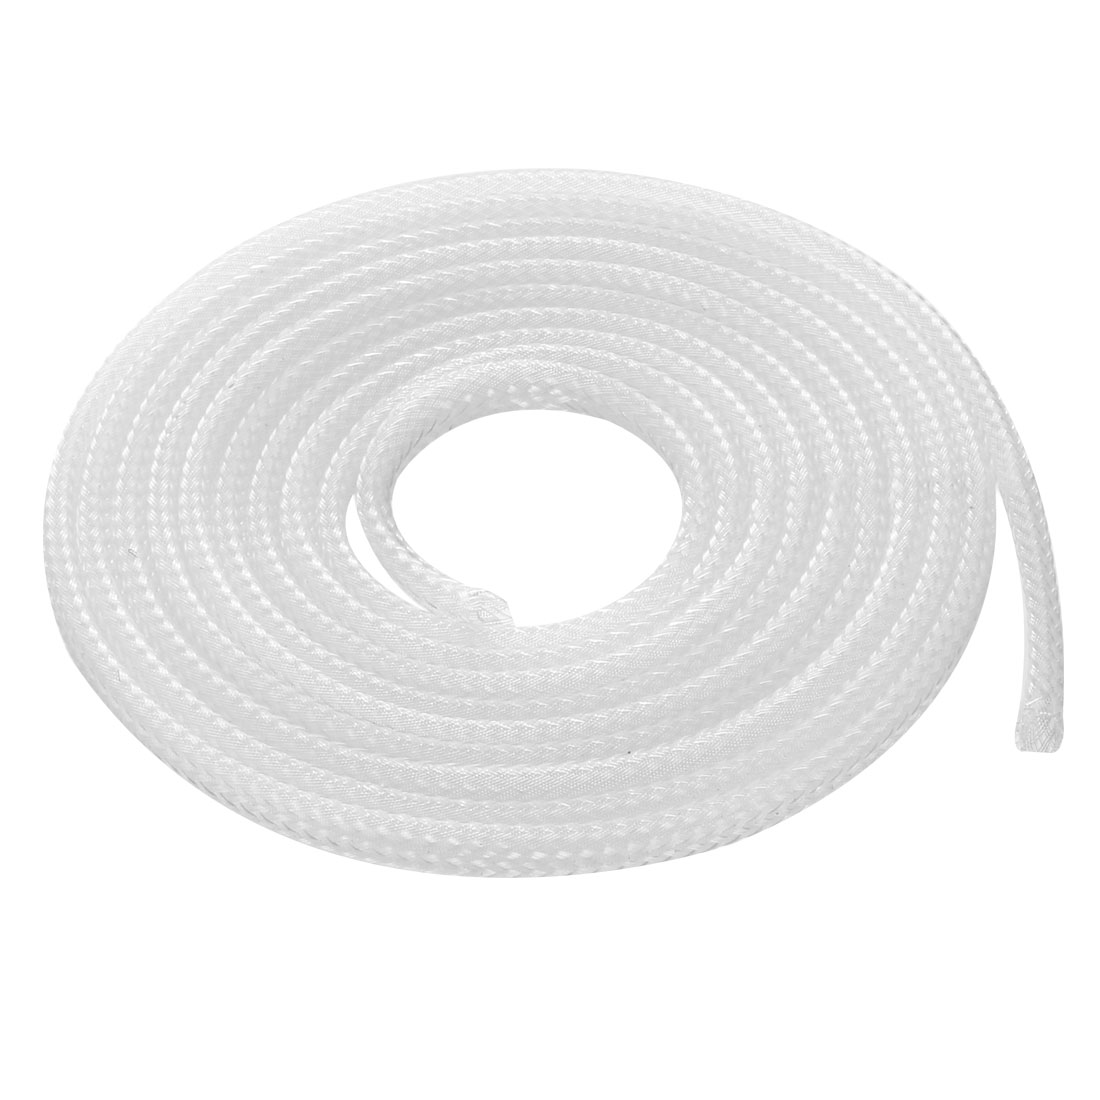 3mm Dia Tight Braided PET Expandable Sleeving Cable Wrap Sheath Clear 1M